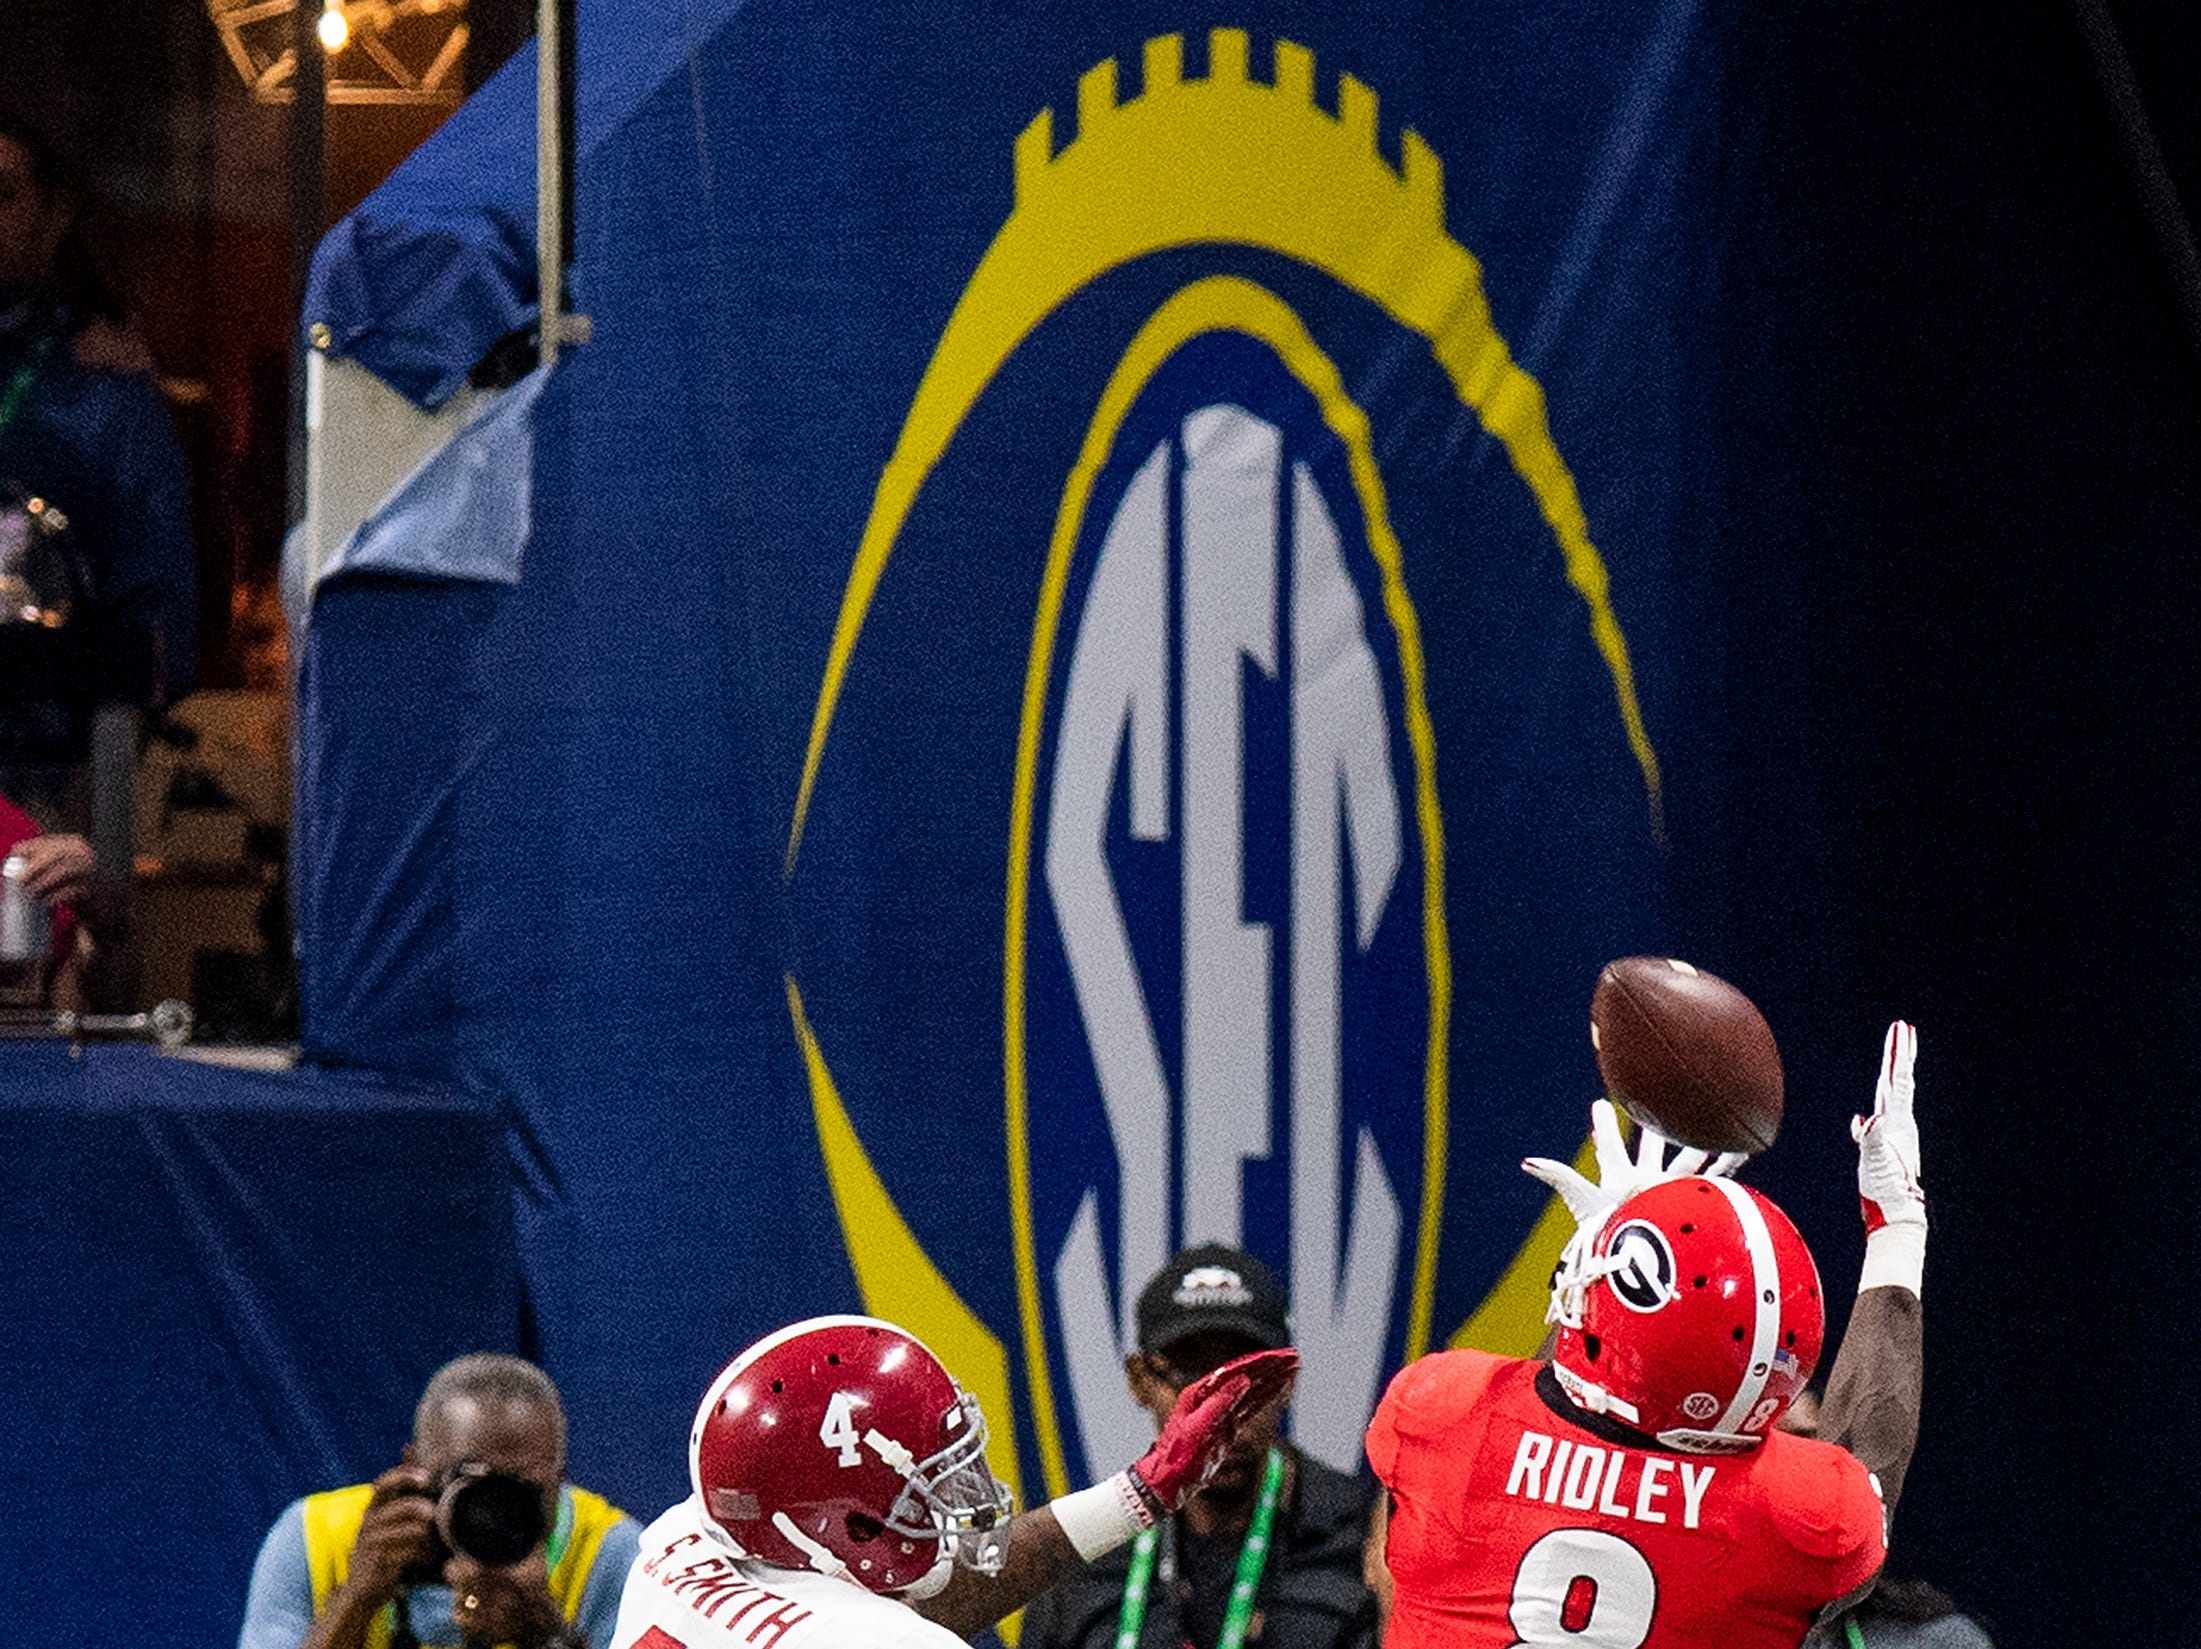 Georgia wide receiver Riley Ridley (8) catches a touchdown pass against Alabama defensive back Saivion Smith (4) in the SEC Championship Game at Mercedes Benz Stadium in Atlanta, Ga., on Saturday December 1, 2018.